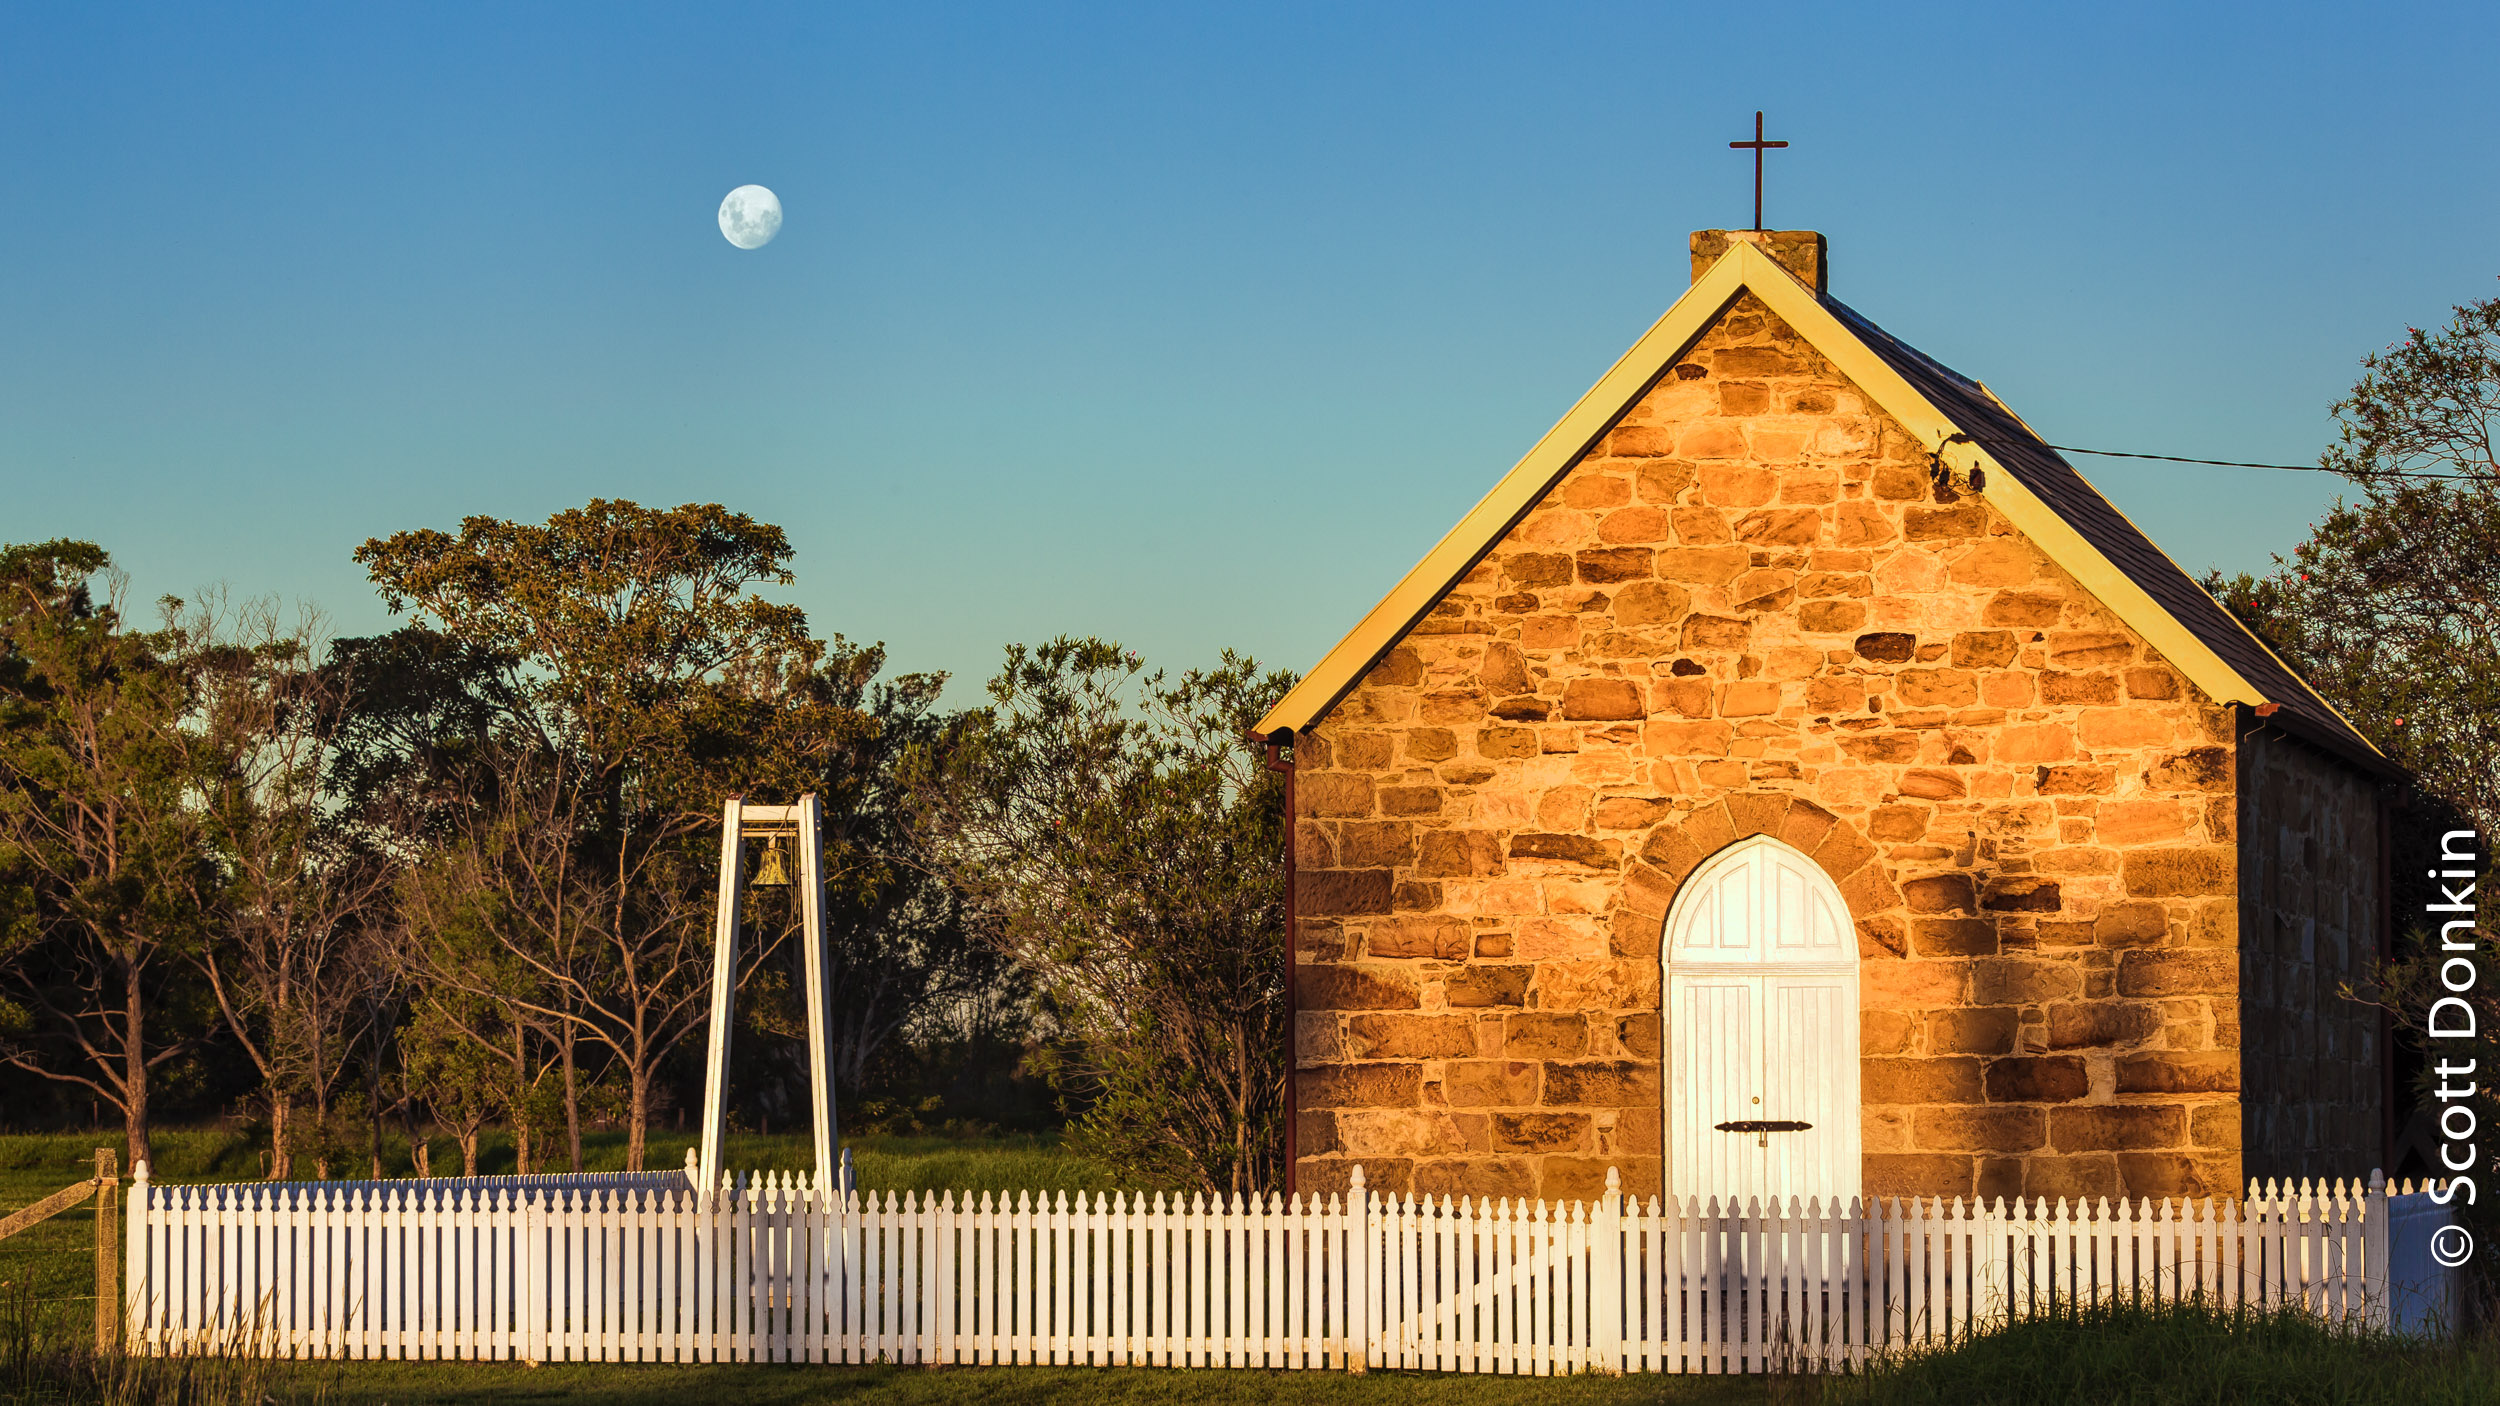 Moonrise over the chapel at Tomago, New South Wales. 9 April 2017.